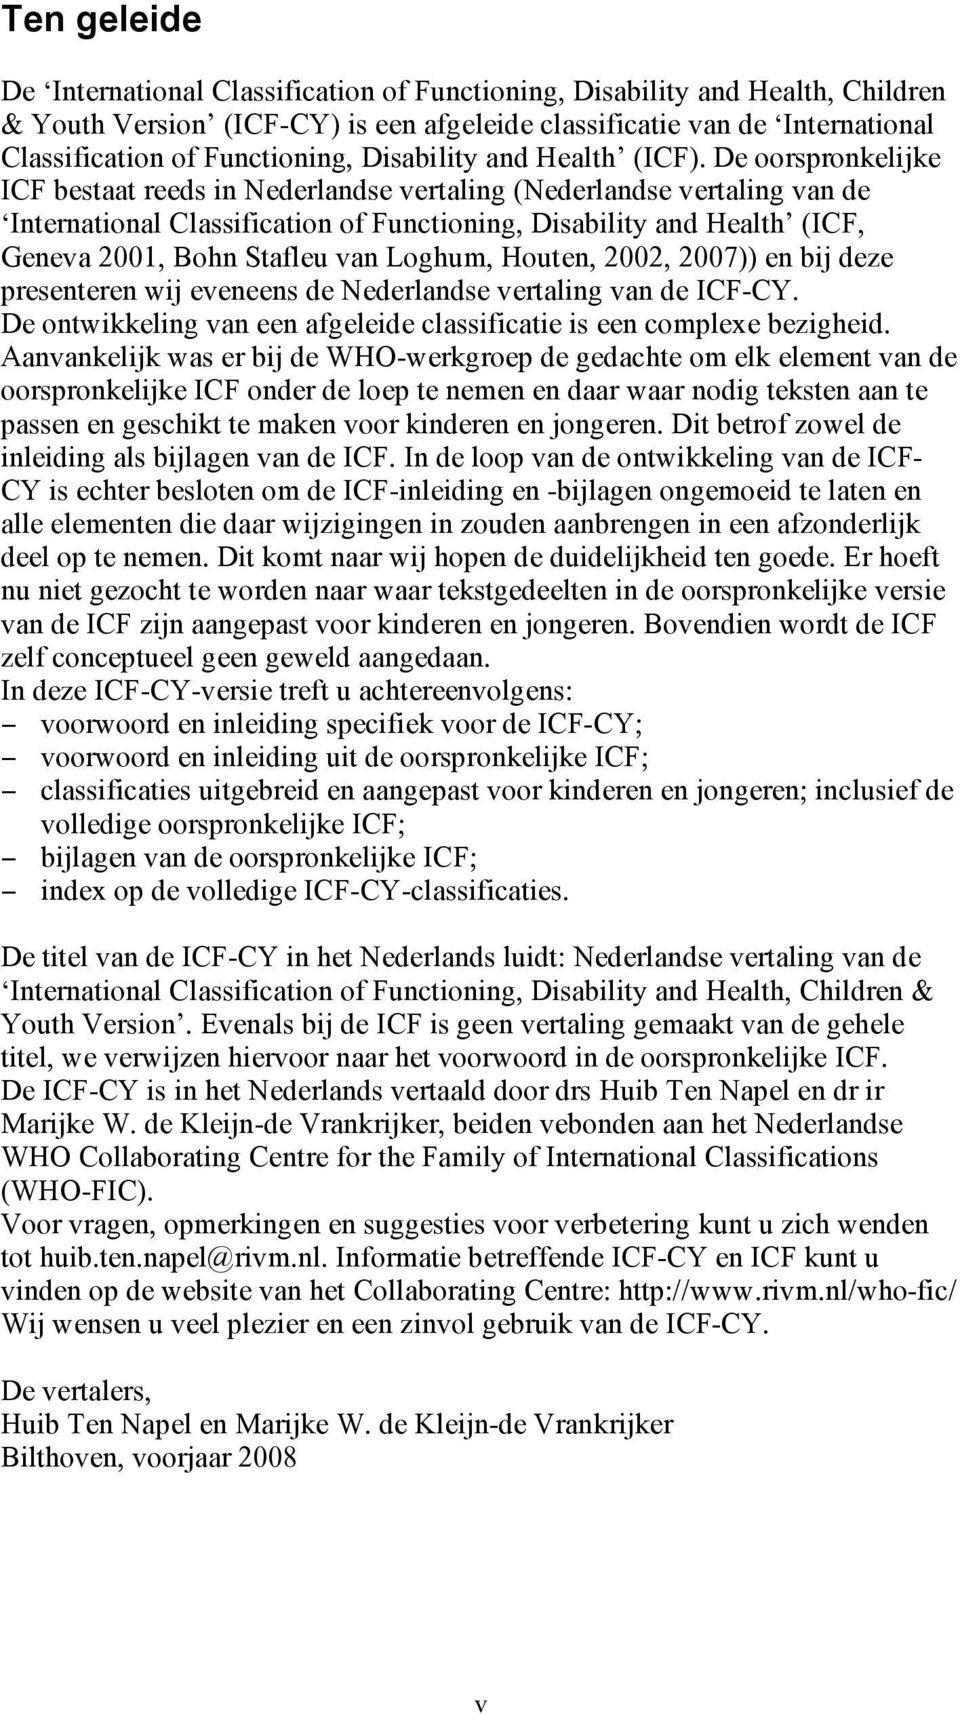 De oorspronkelijke ICF bestaat reeds in Nederlandse vertaling (Nederlandse vertaling van de International Classification of Functioning, Disability and Health (ICF, Geneva 2001, Bohn Stafleu van